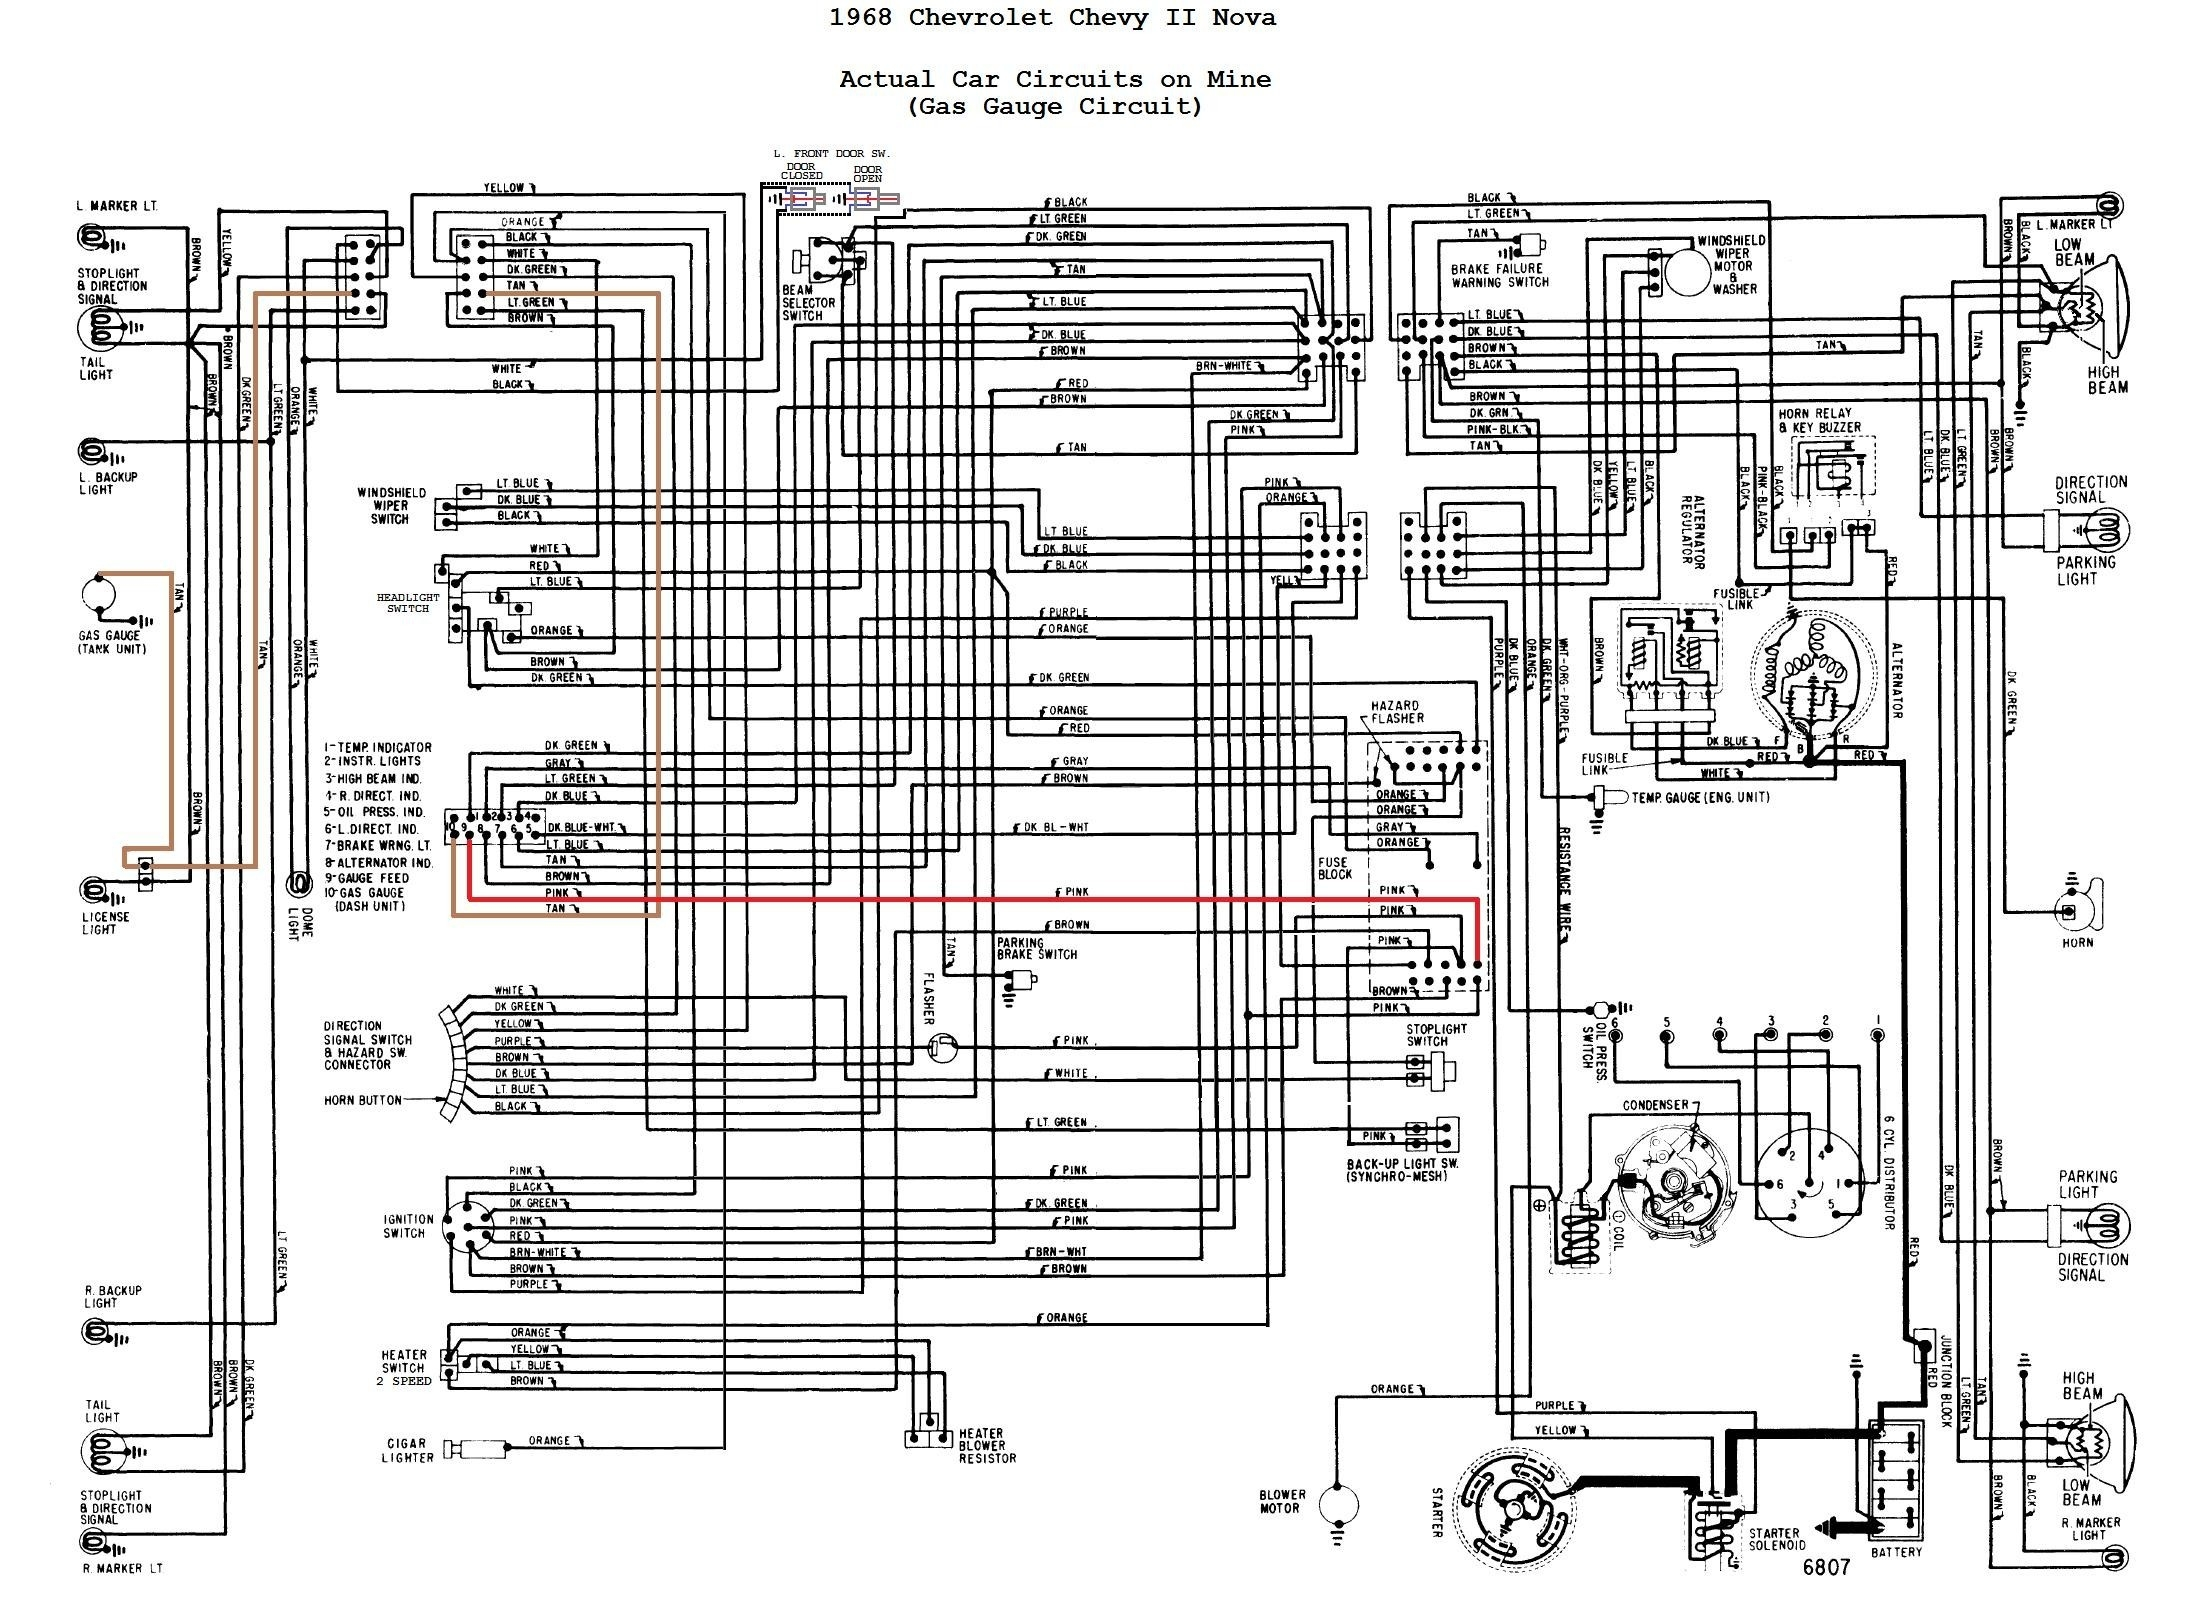 1967 Firebird Wiring Diagram Free Pontiac 1969 Chevy Nova Image Details Wire Center U2022 Rh